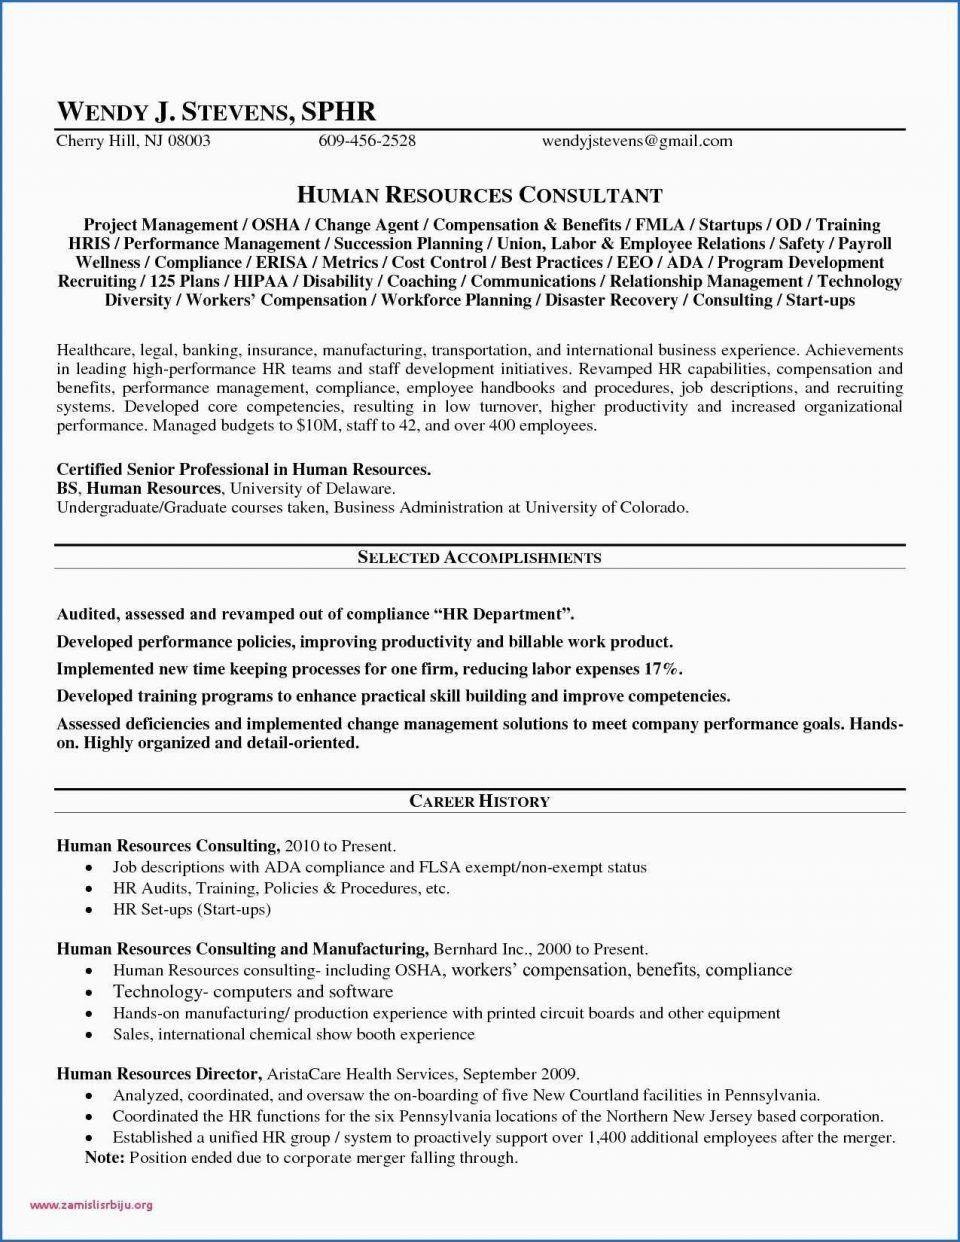 Human Resources Resume Objectives Human Resources Objective For